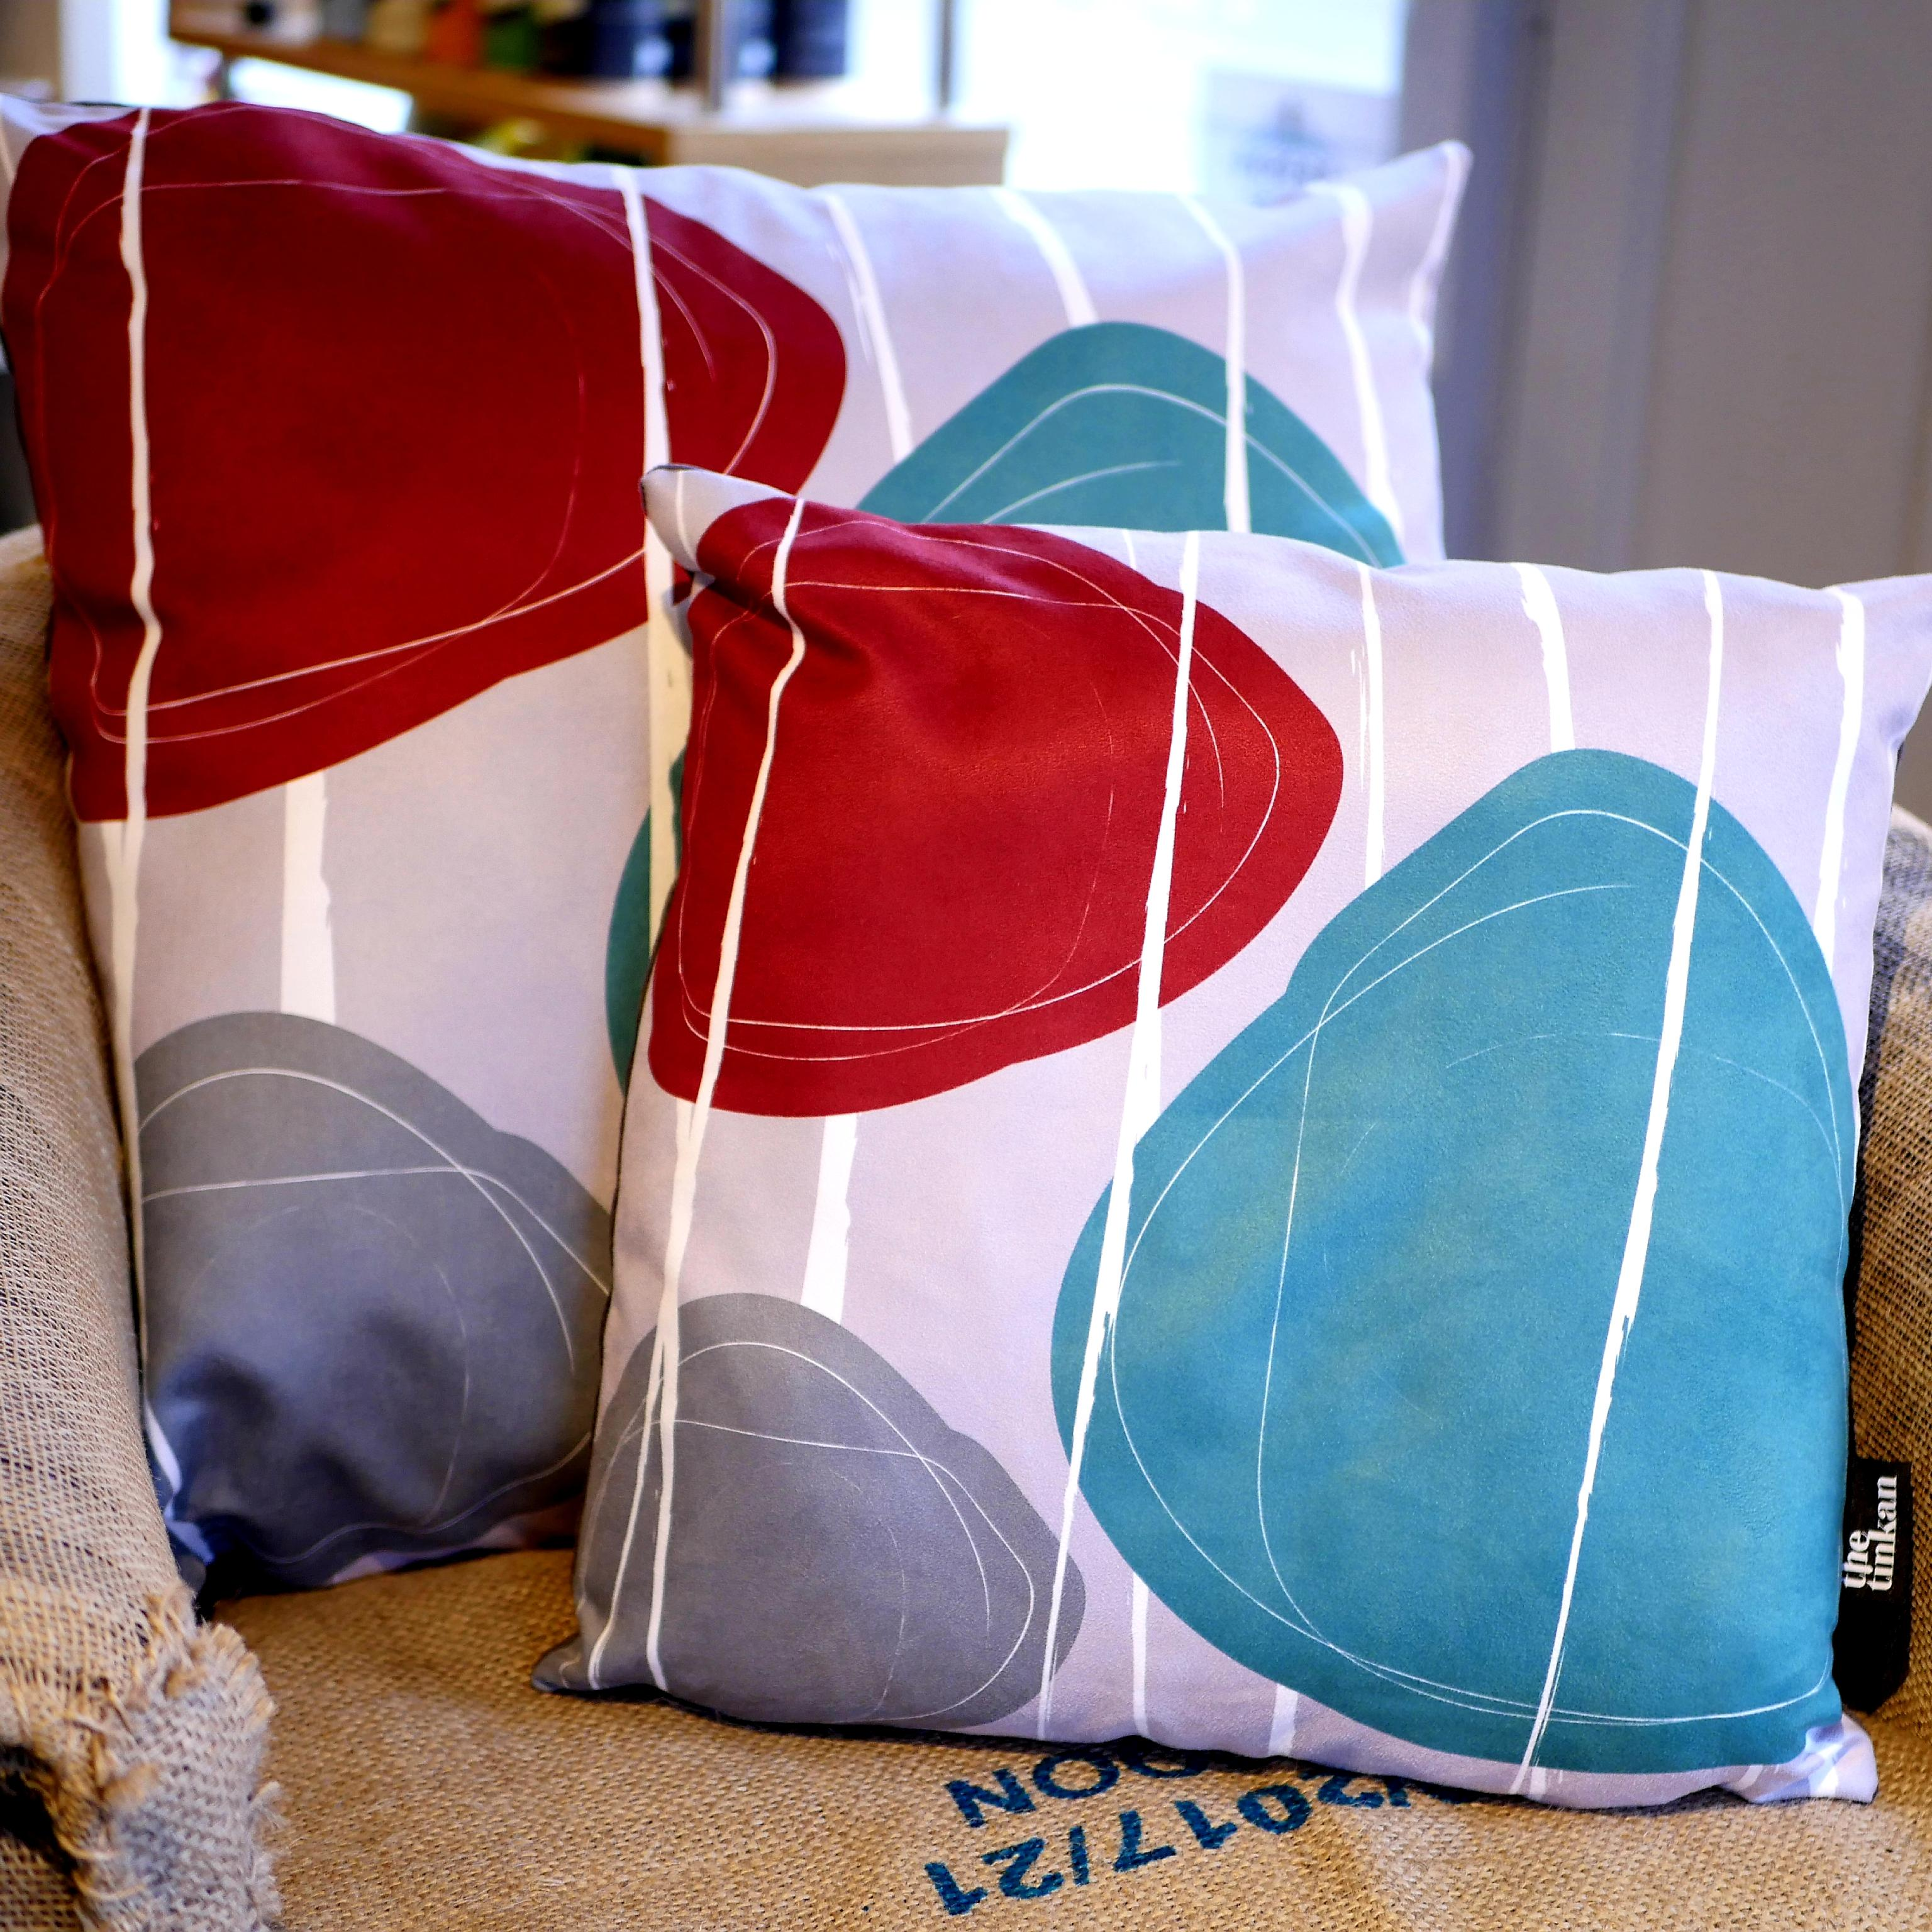 Aqua teal, red & grey faux suede soft feel Abstract Pebbles Cushions, 43cm & 57cm square, with luxury inner pads designed by thetinkan. VIEW PRODUCT >>